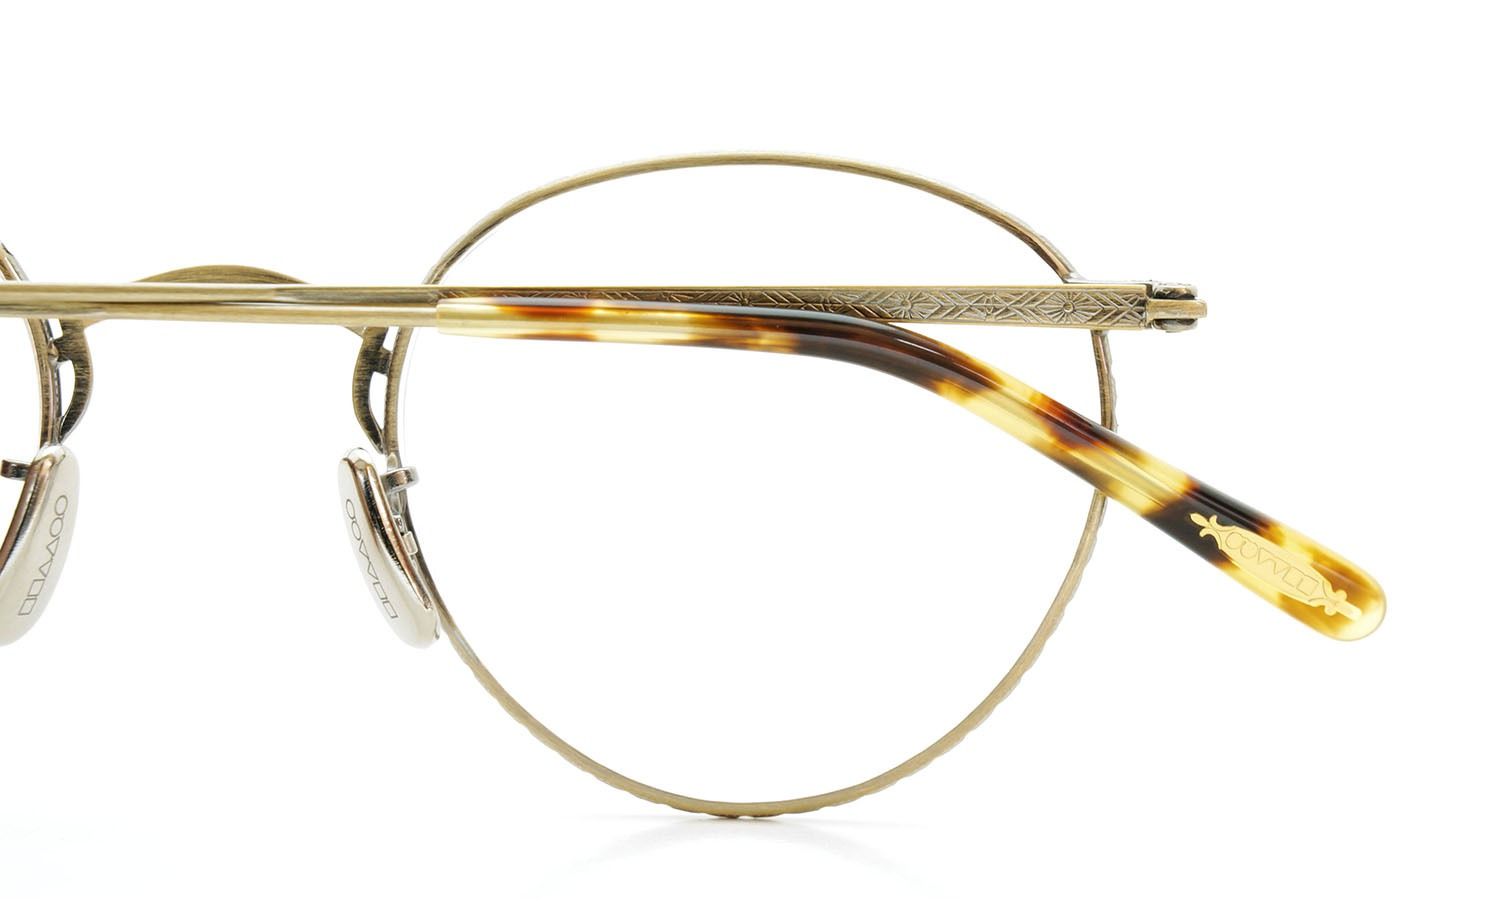 OLIVER PEOPLES (オリバーピープルズ) 2014年-2015秋冬 最新作メガネ OP-47T AG 16